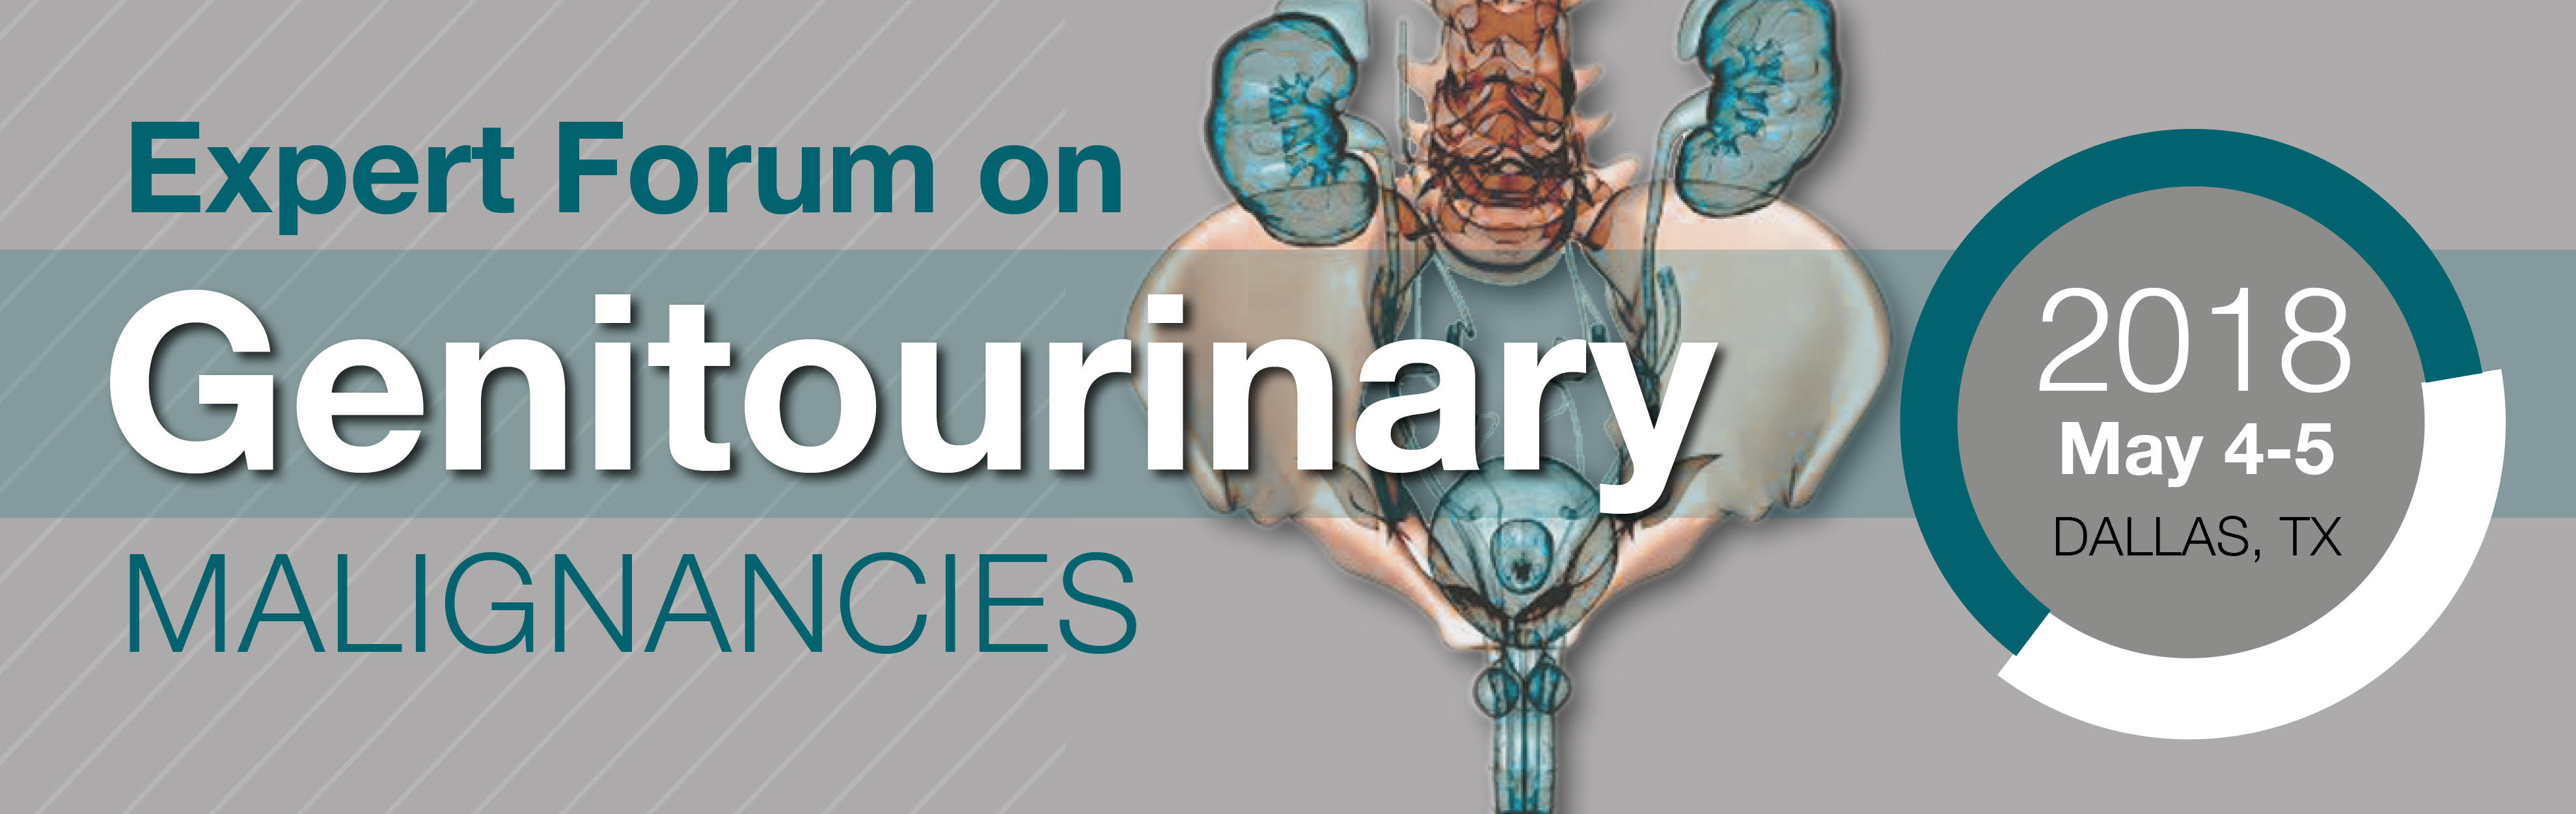 Expert Forum on Genitourinary Malignancies - Dallas